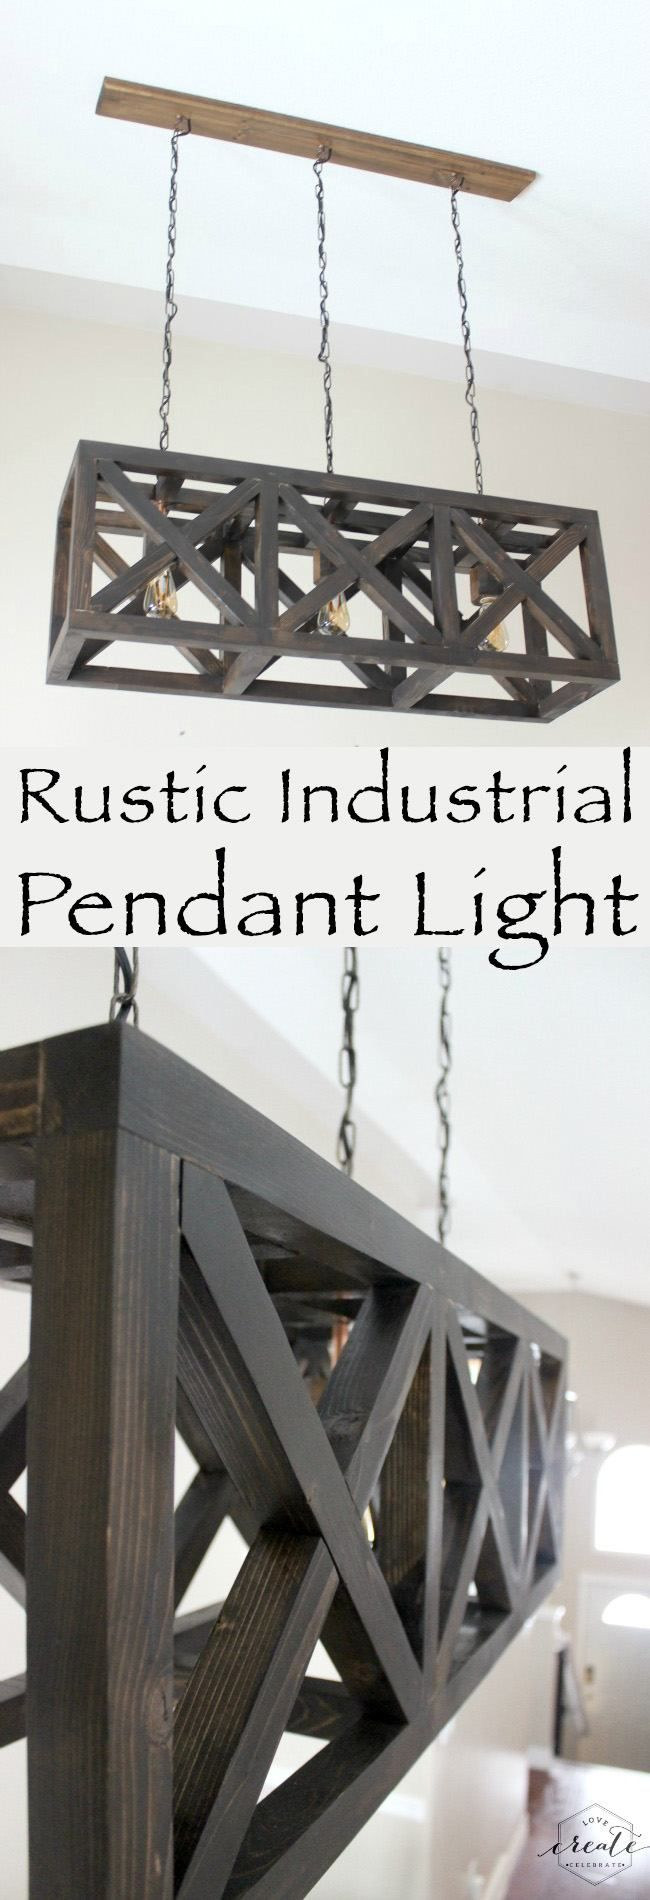 1000 ideas about industrial pendant lights on pinterest pendant lighting industrial and hanging pendants awesome 15 task lighting